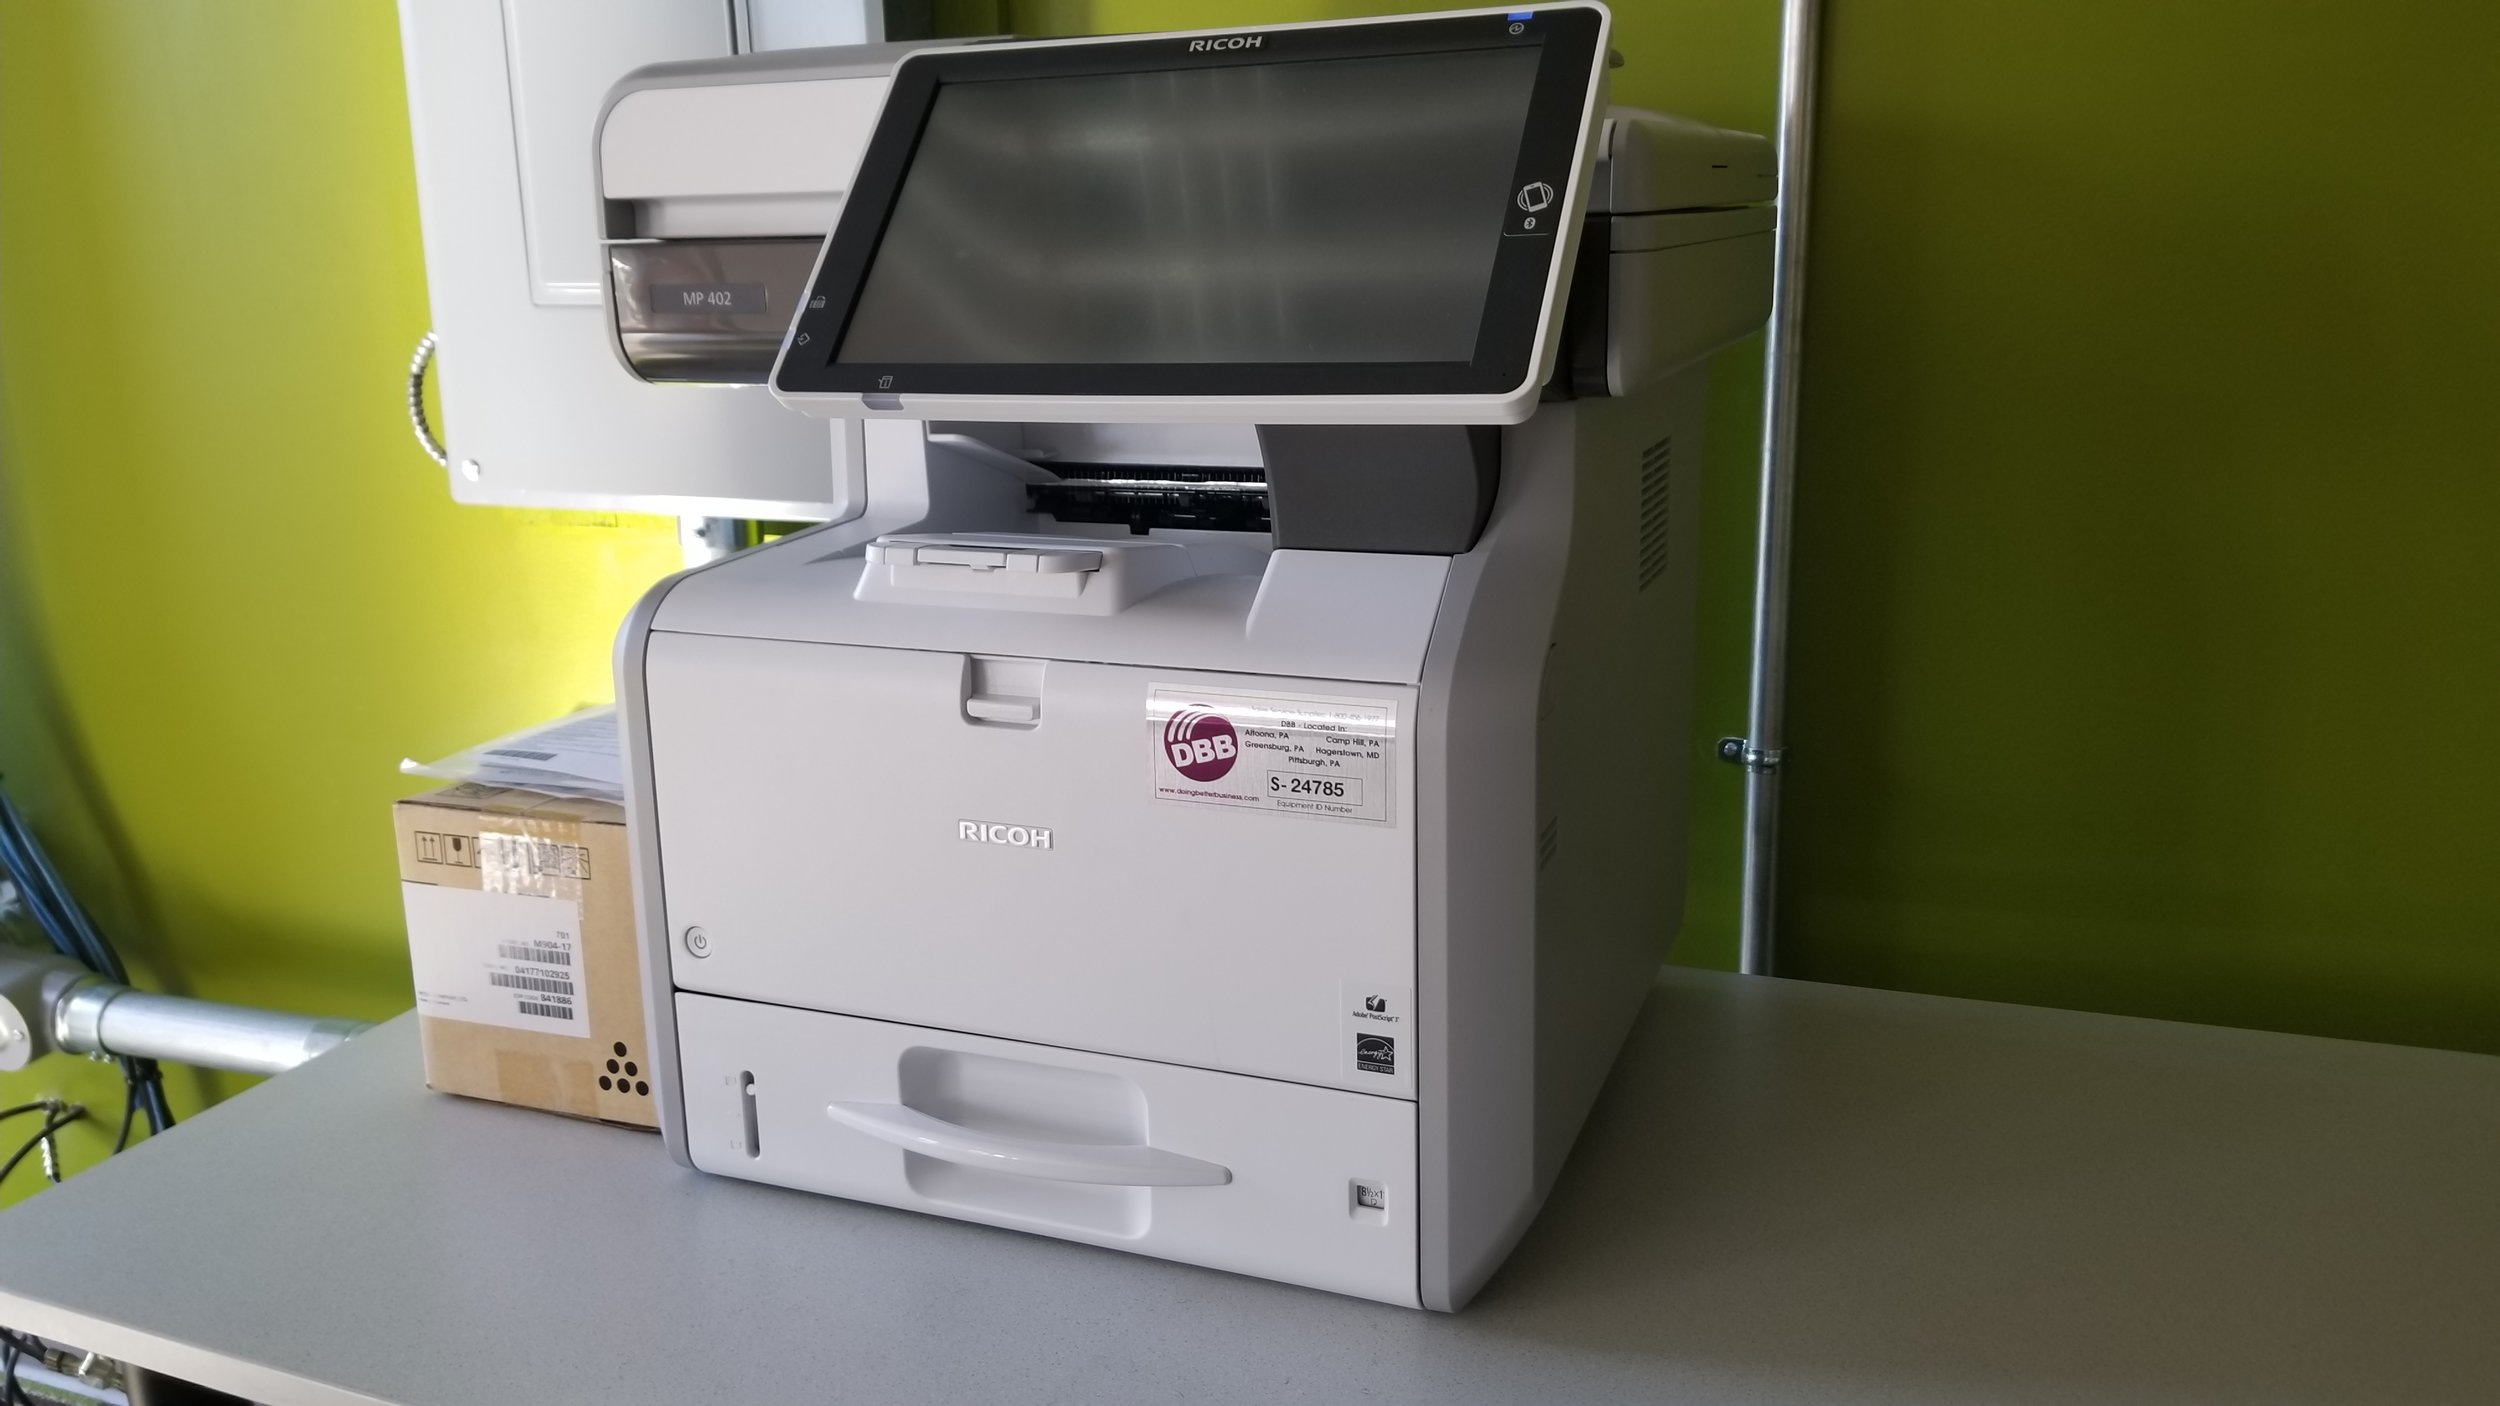 Up to 200 print copies can be made by members each month, and members are able to use the machine for scanning materials as well.